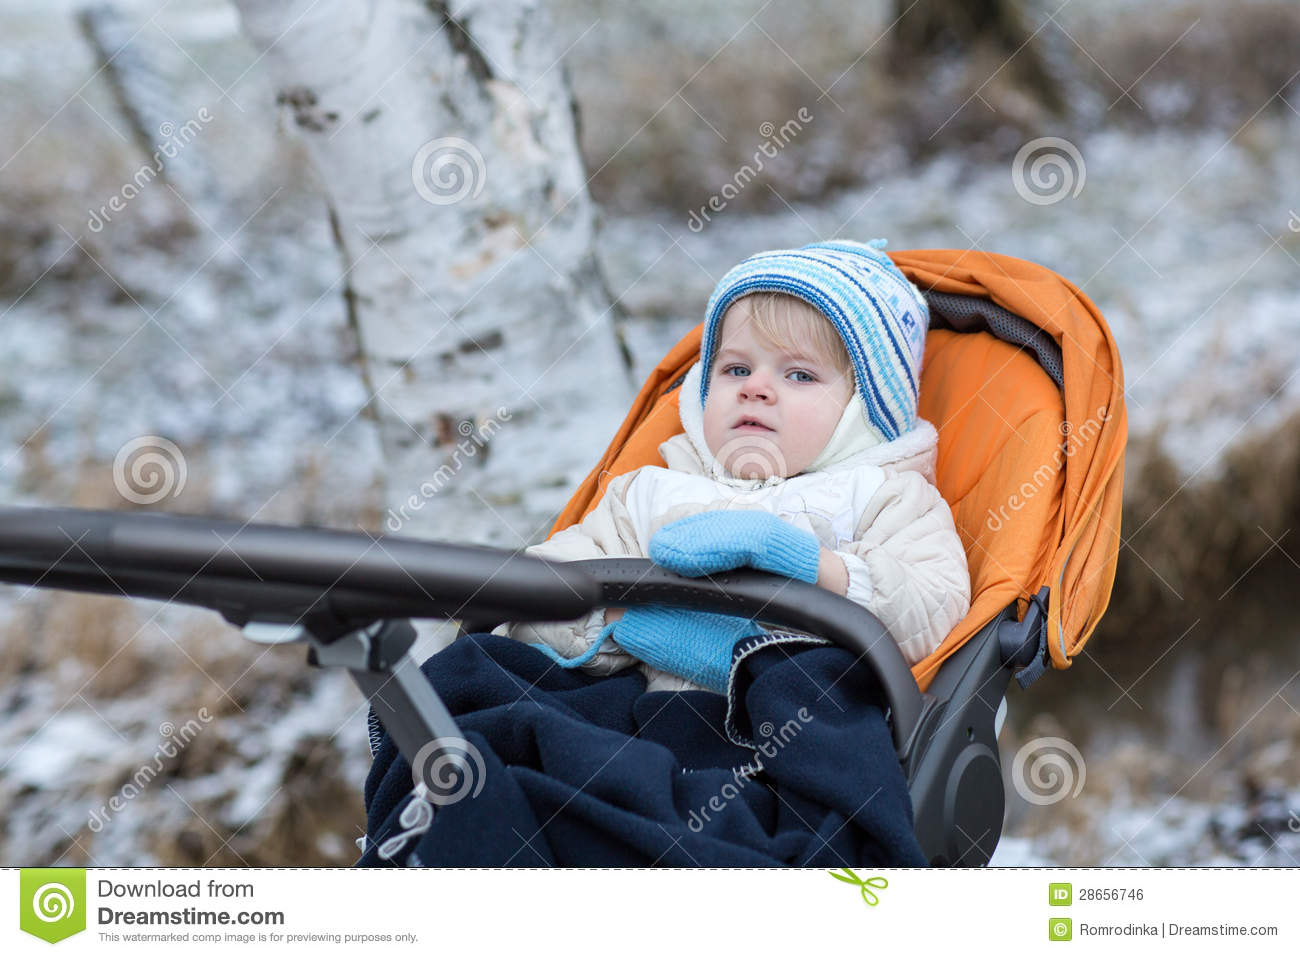 e0ca57107848 Little Boy One Year Old In Warm Winter Clothes Stock Photo - Image ...